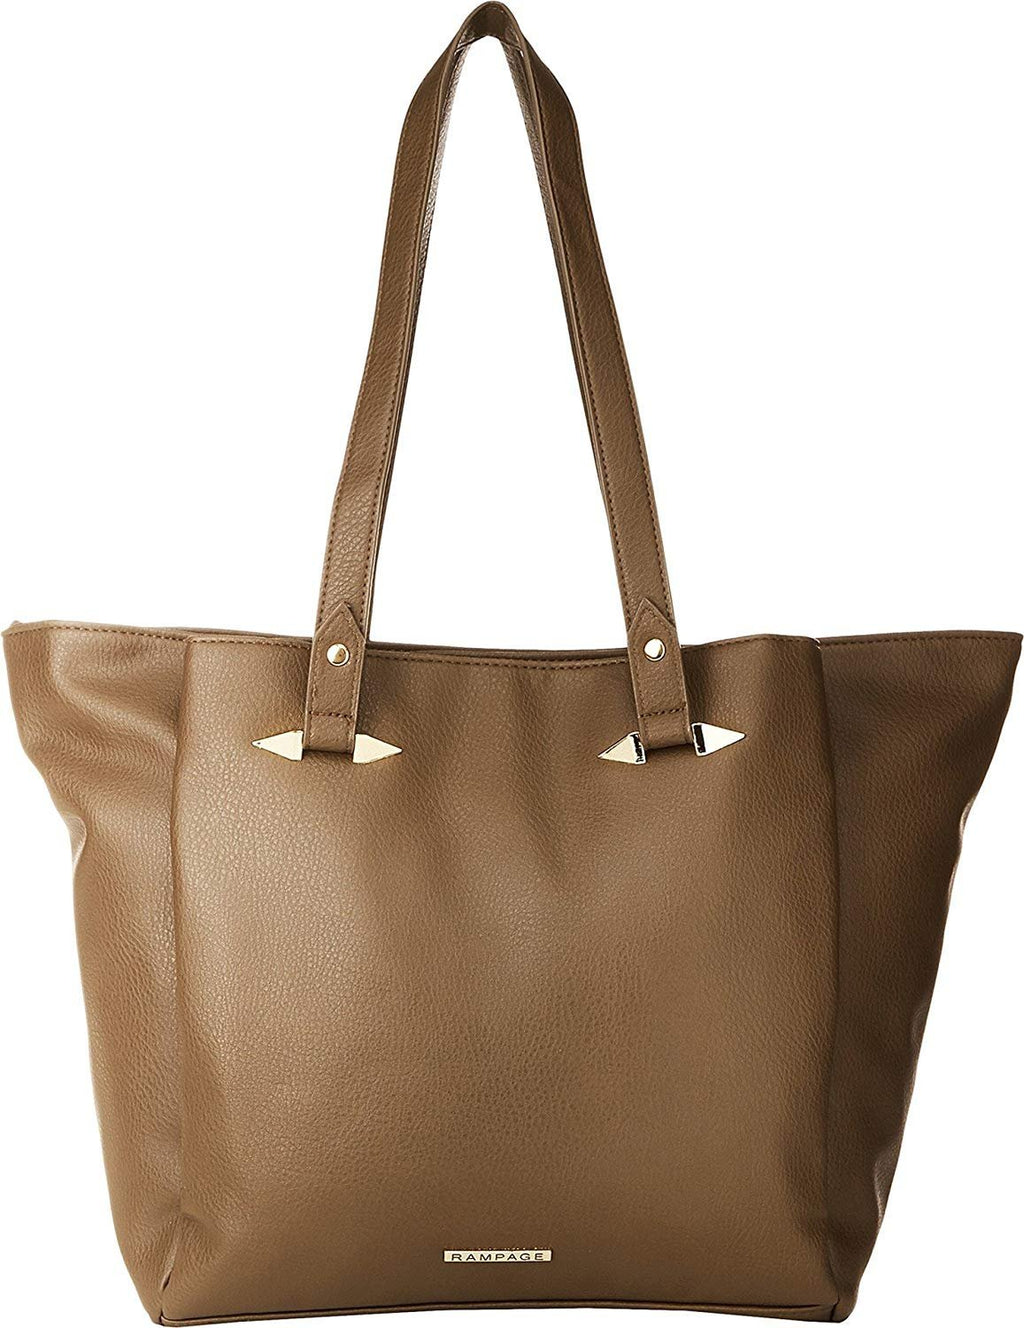 Rampage Women's Tote w/ Spike Handle Hardware Bag